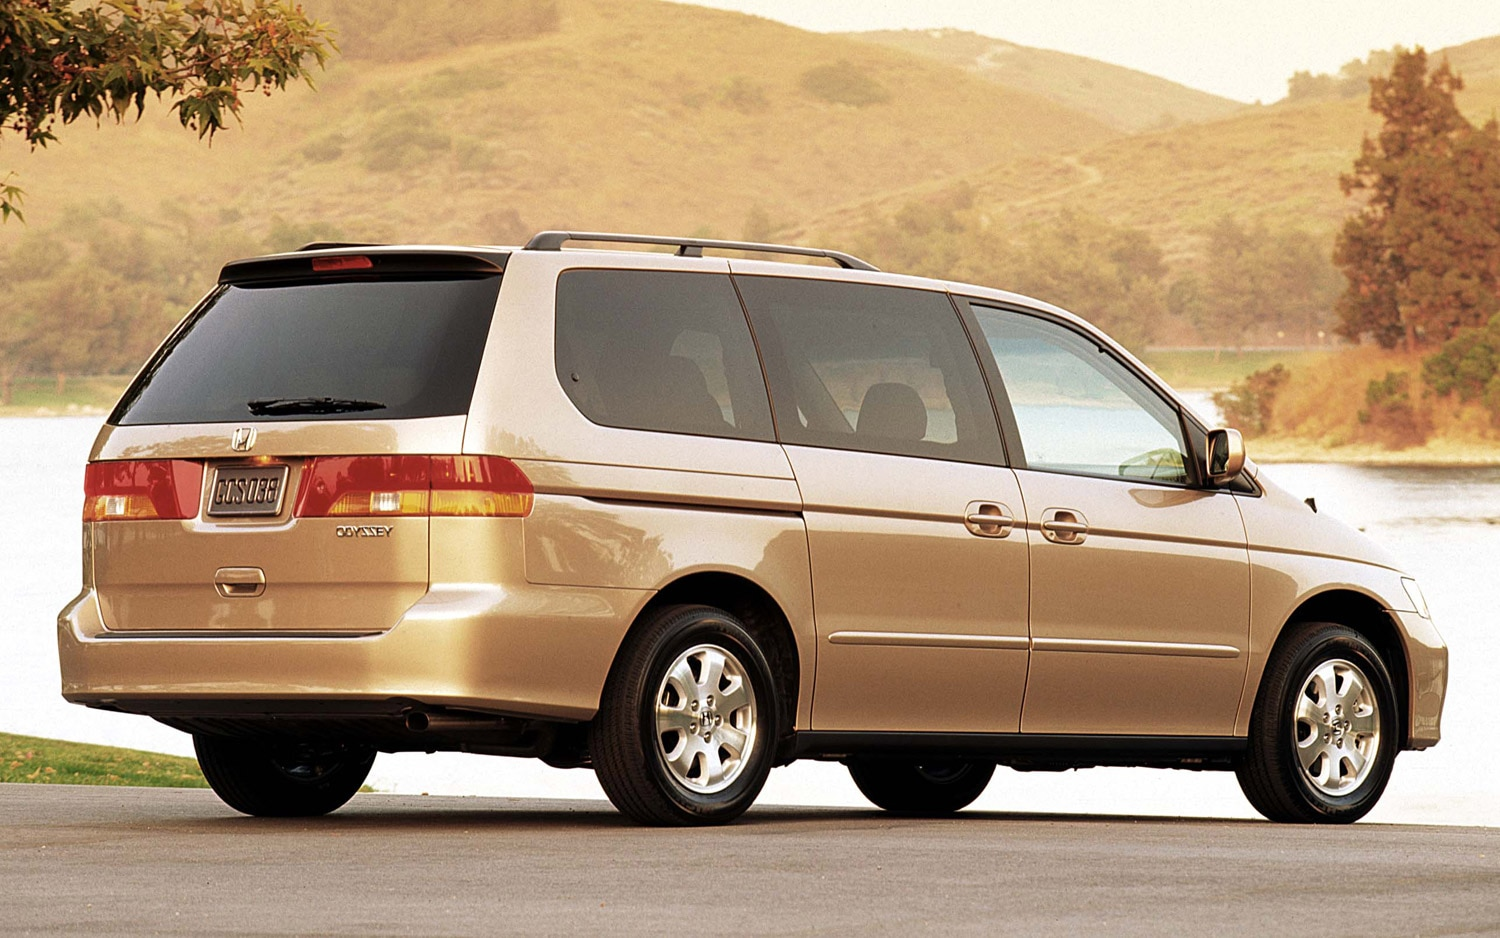 2002 Honda Odyssey Rear Three Quarter